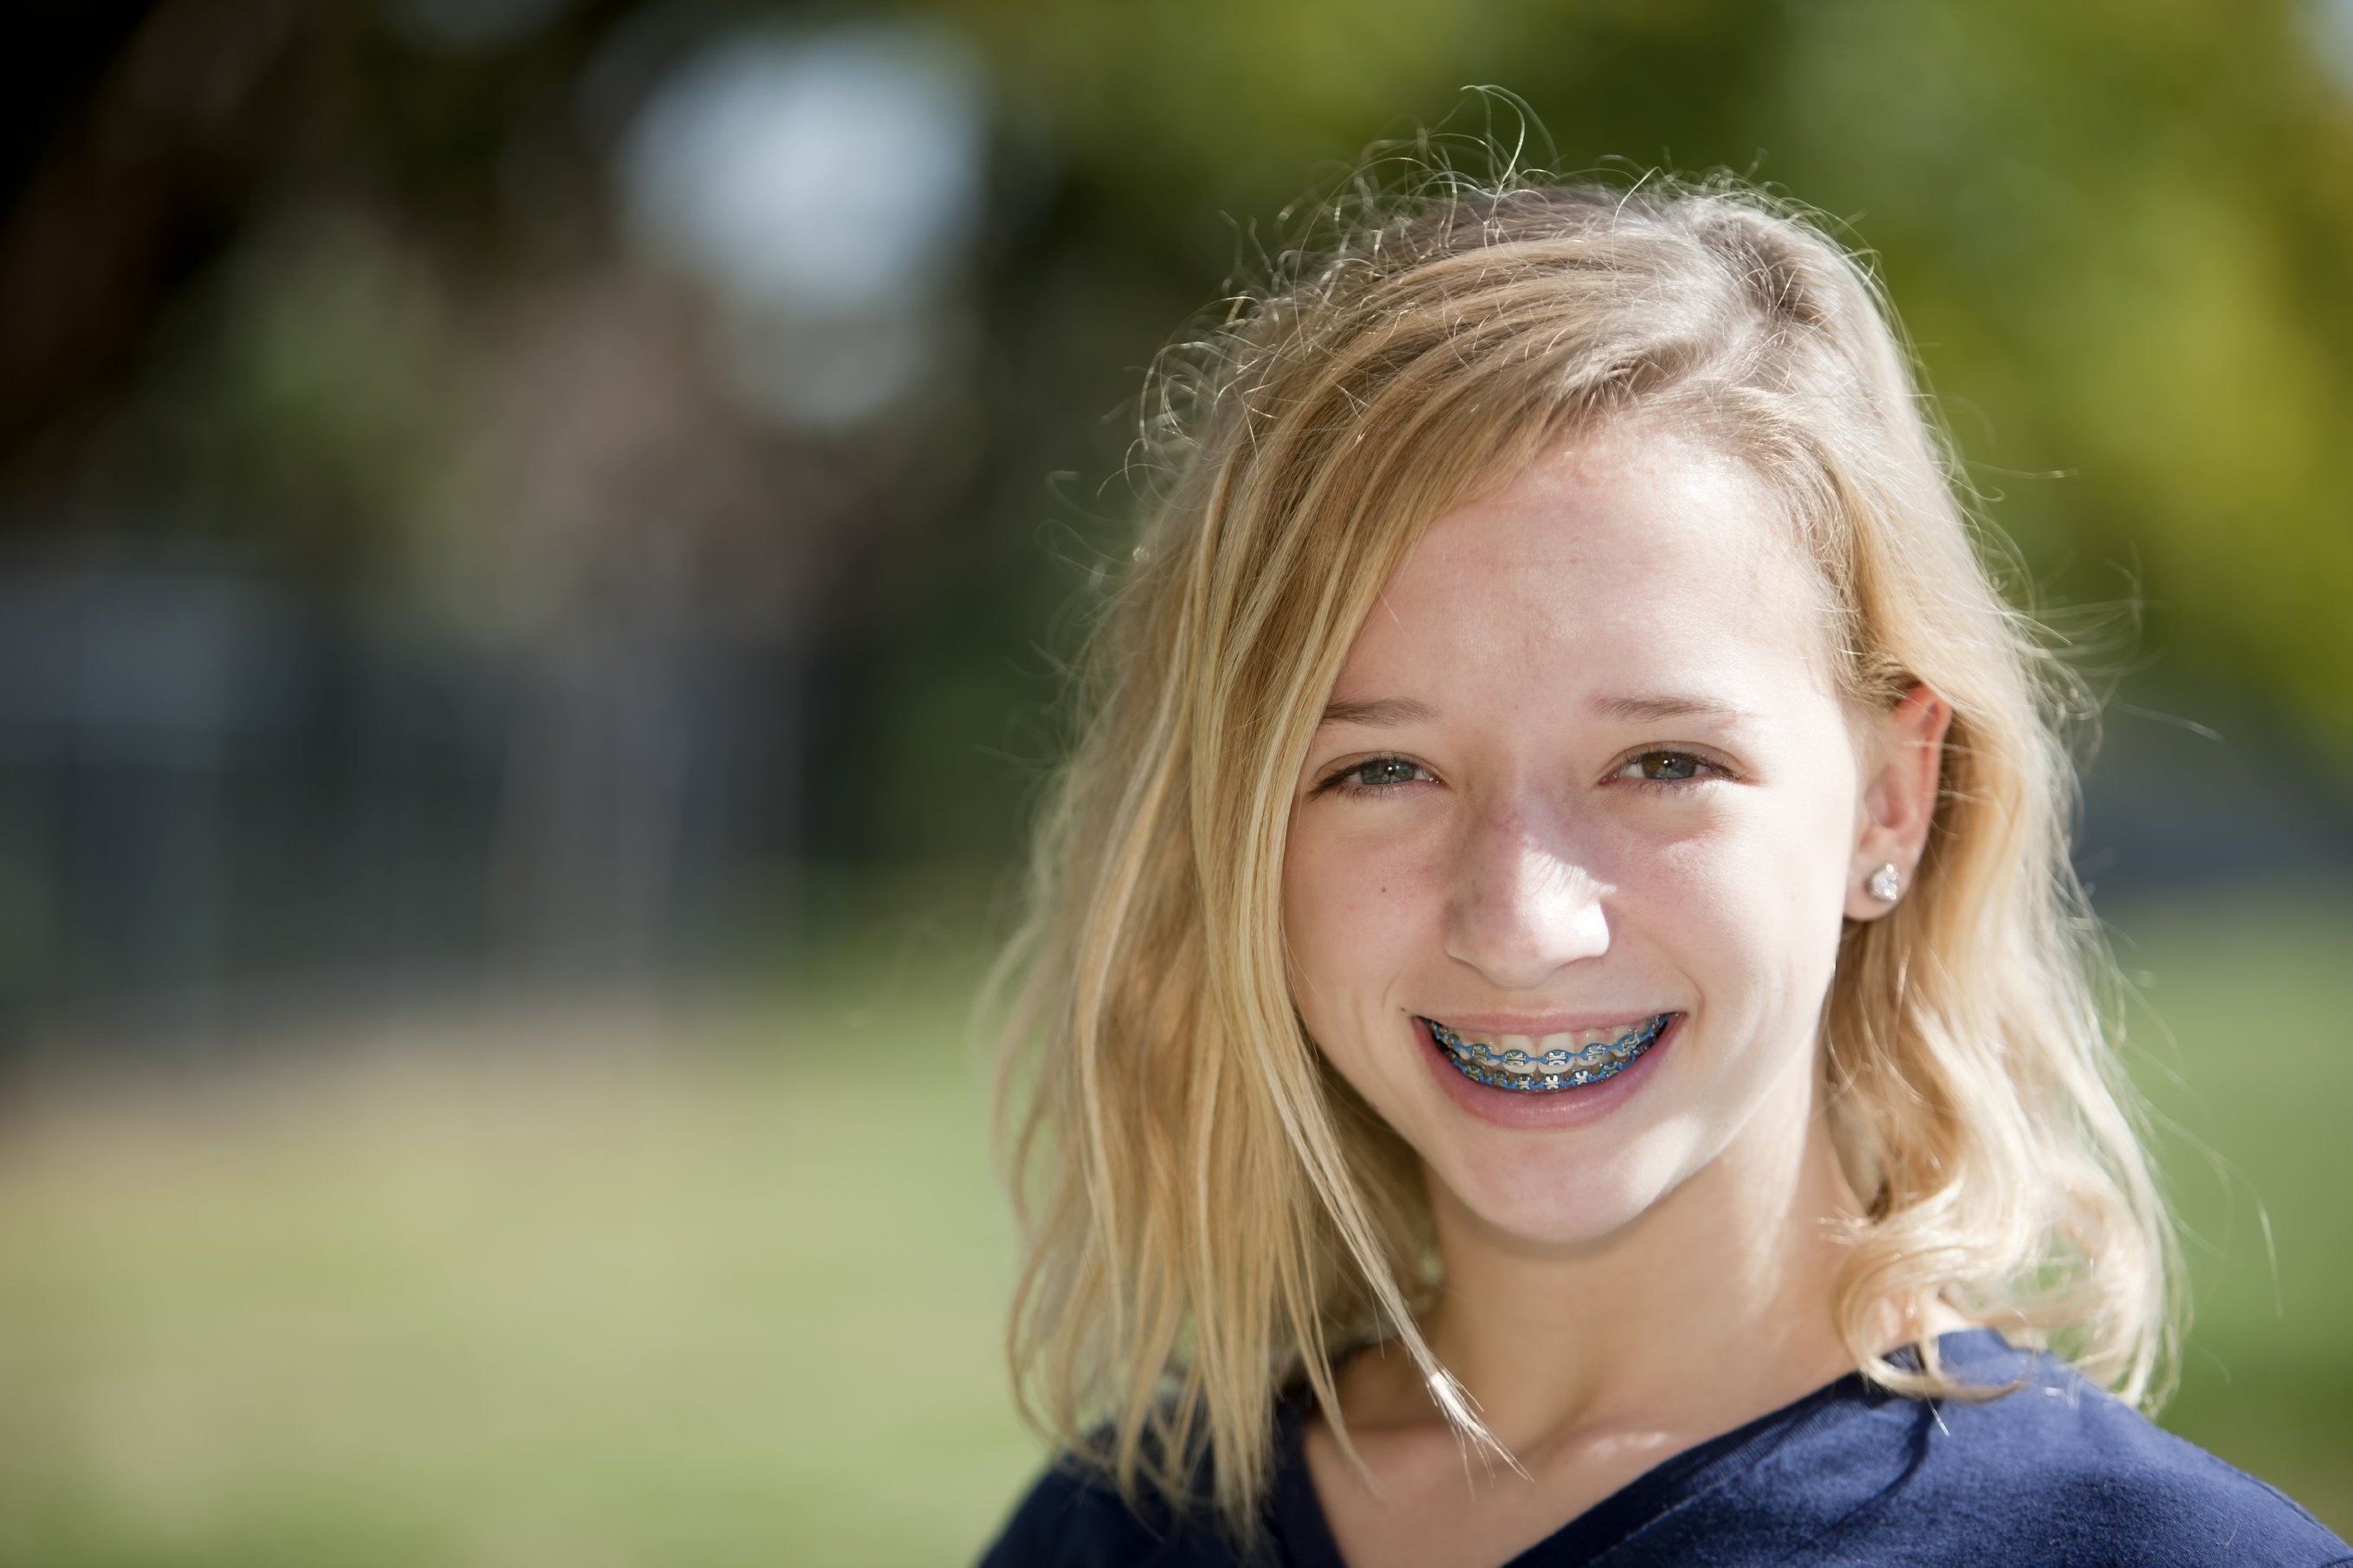 Orthodontic Braces in San Antonio TX